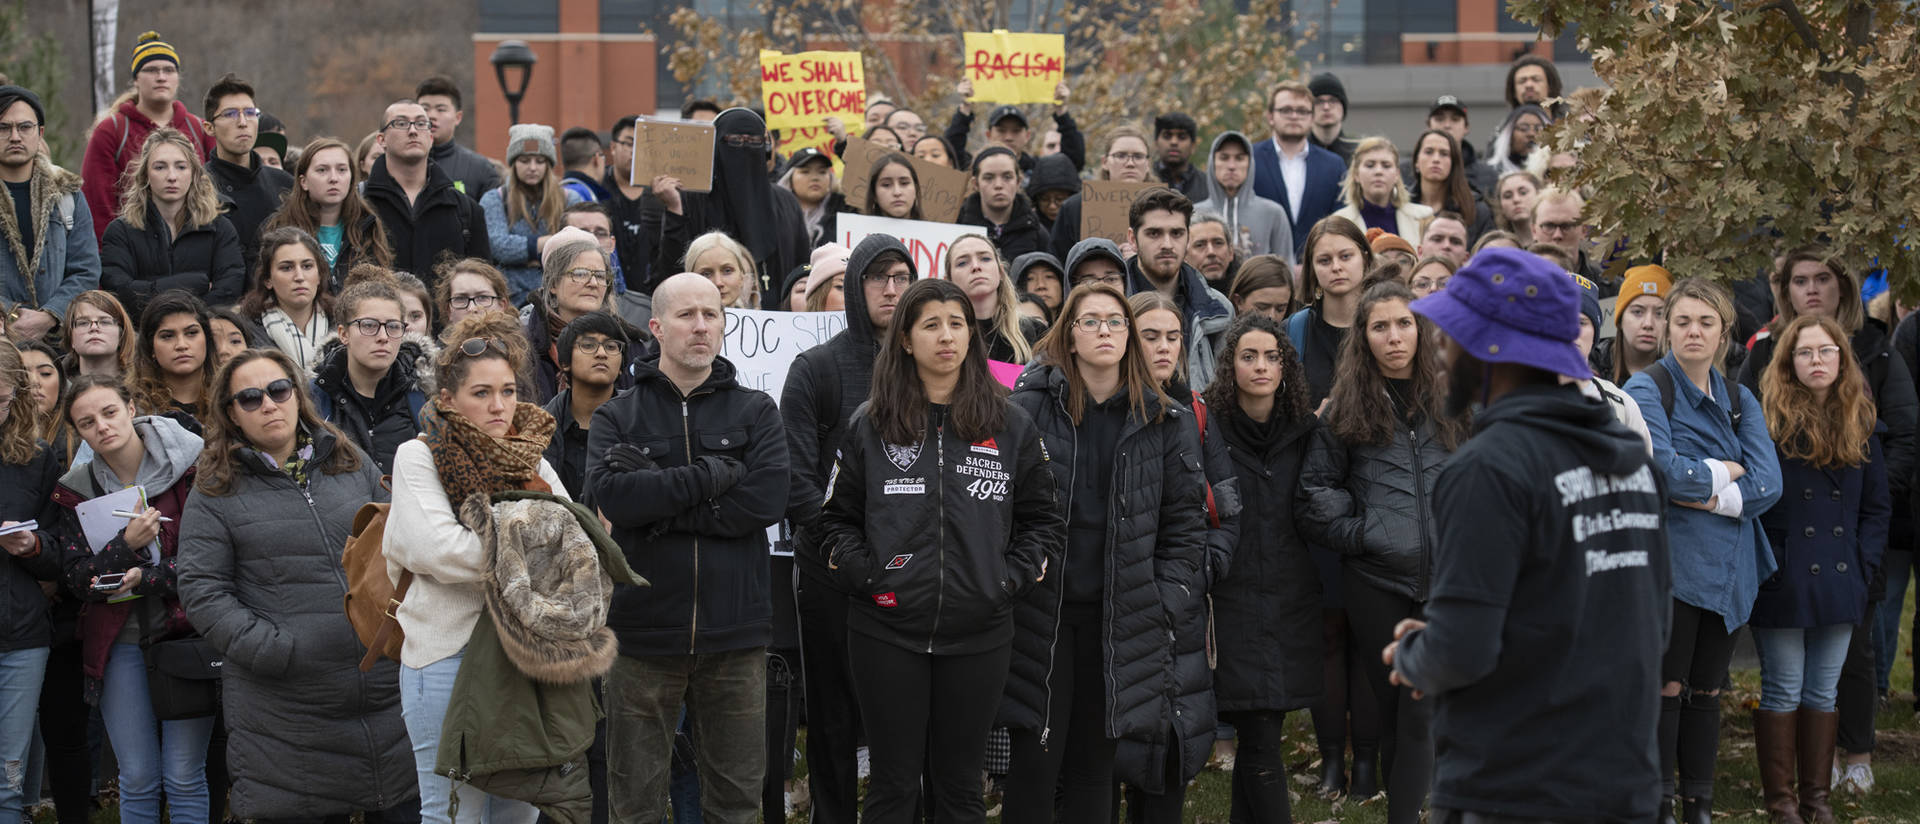 UW-Eau Claire students during walkout and protest, Nov. 25, 2019